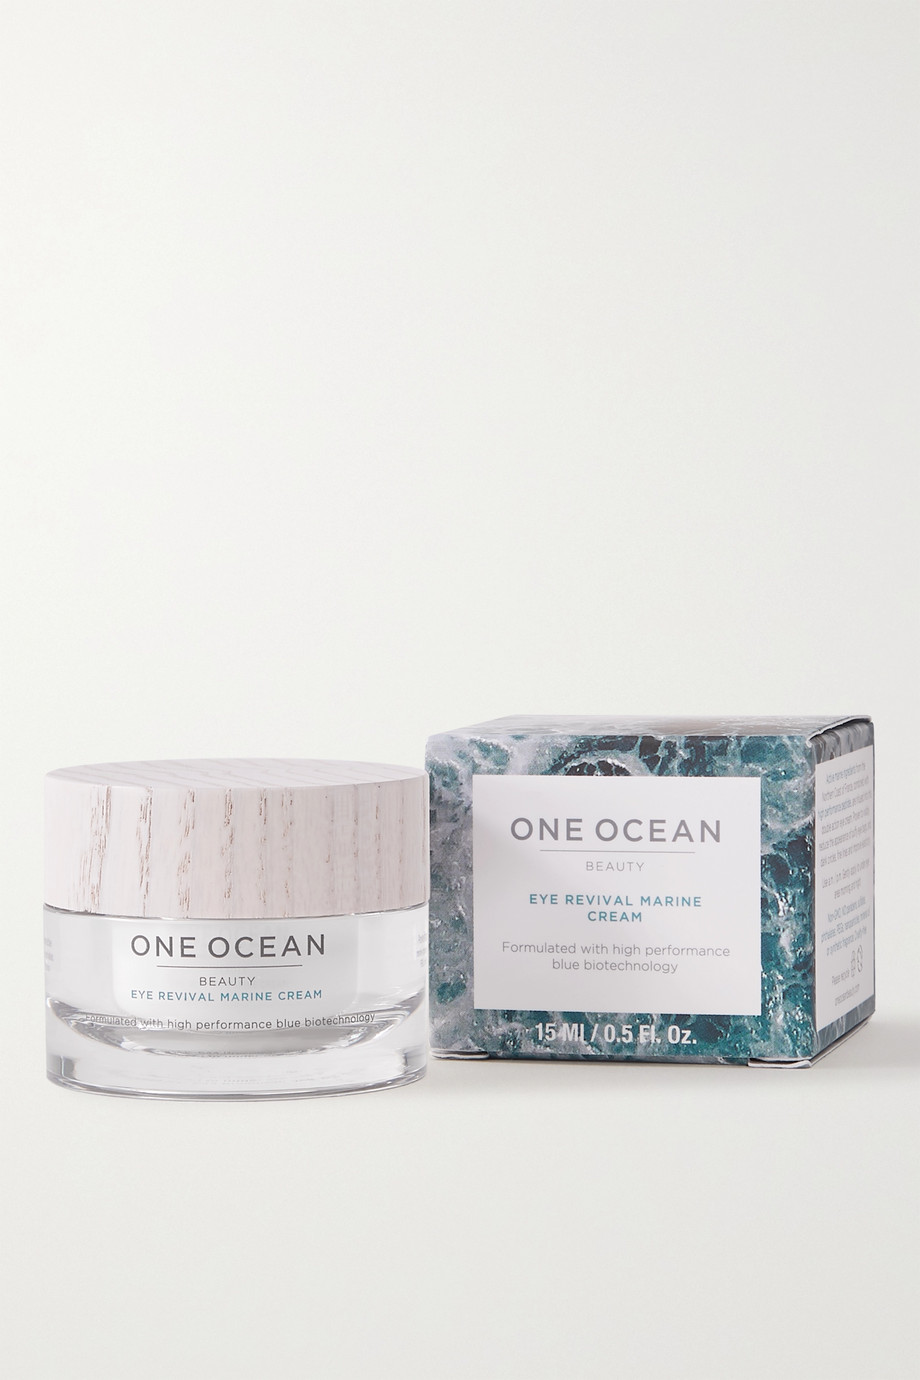 One Ocean Beauty Eye Revival Marine Cream, 15 ml – Augencreme